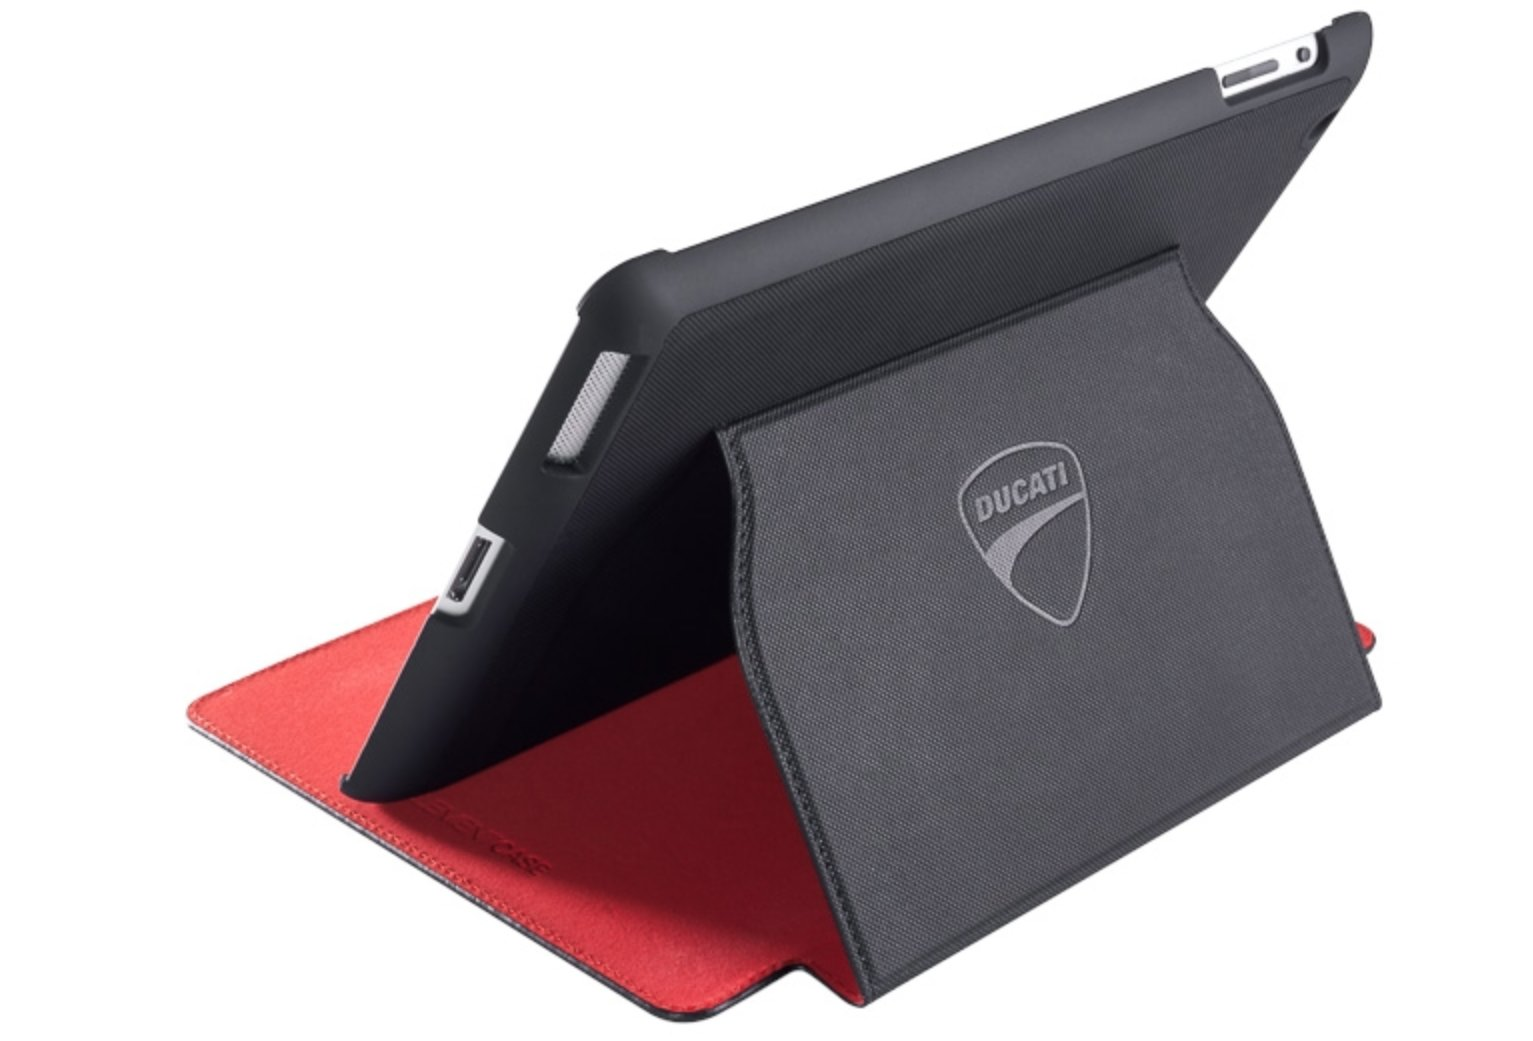 Soft-Tec Ducati Folio for Apple iPad – Review